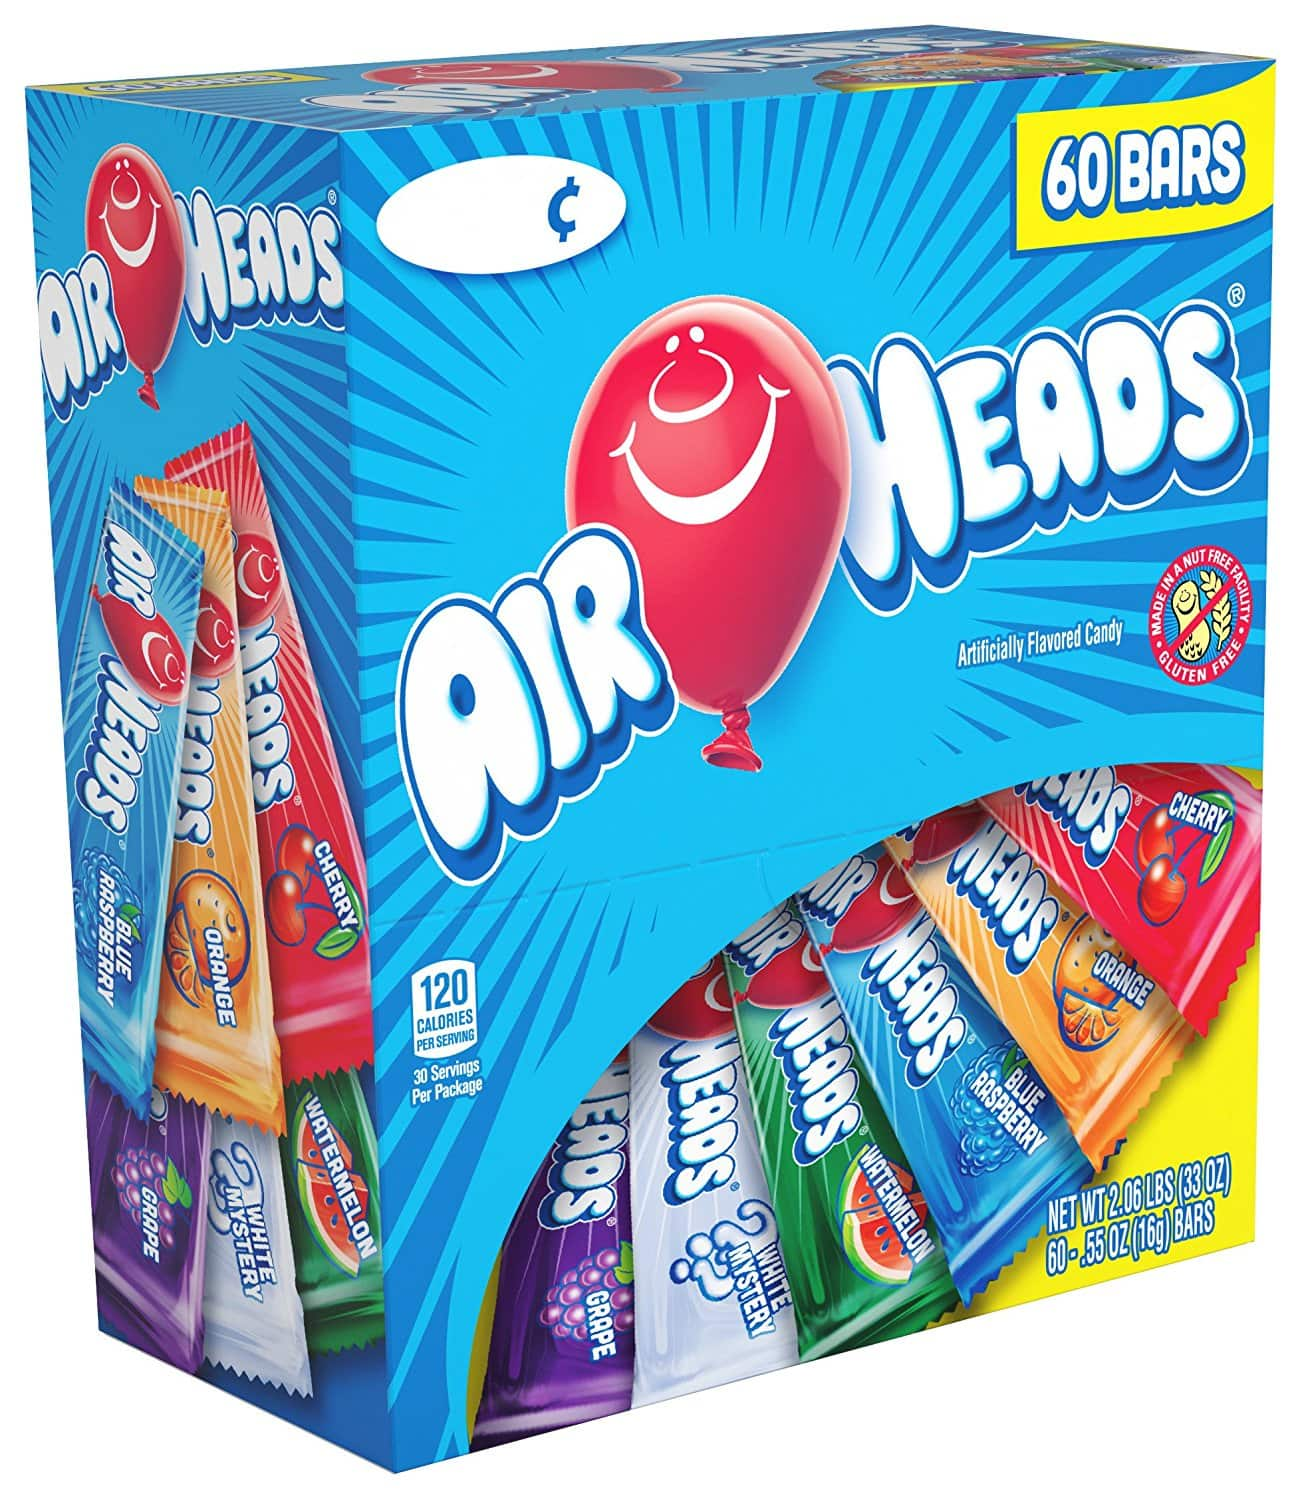 60-Pack of 0.55oz Airheads Candy Bars (Variety Pack) $6.83 w/ S&S + Free S&H